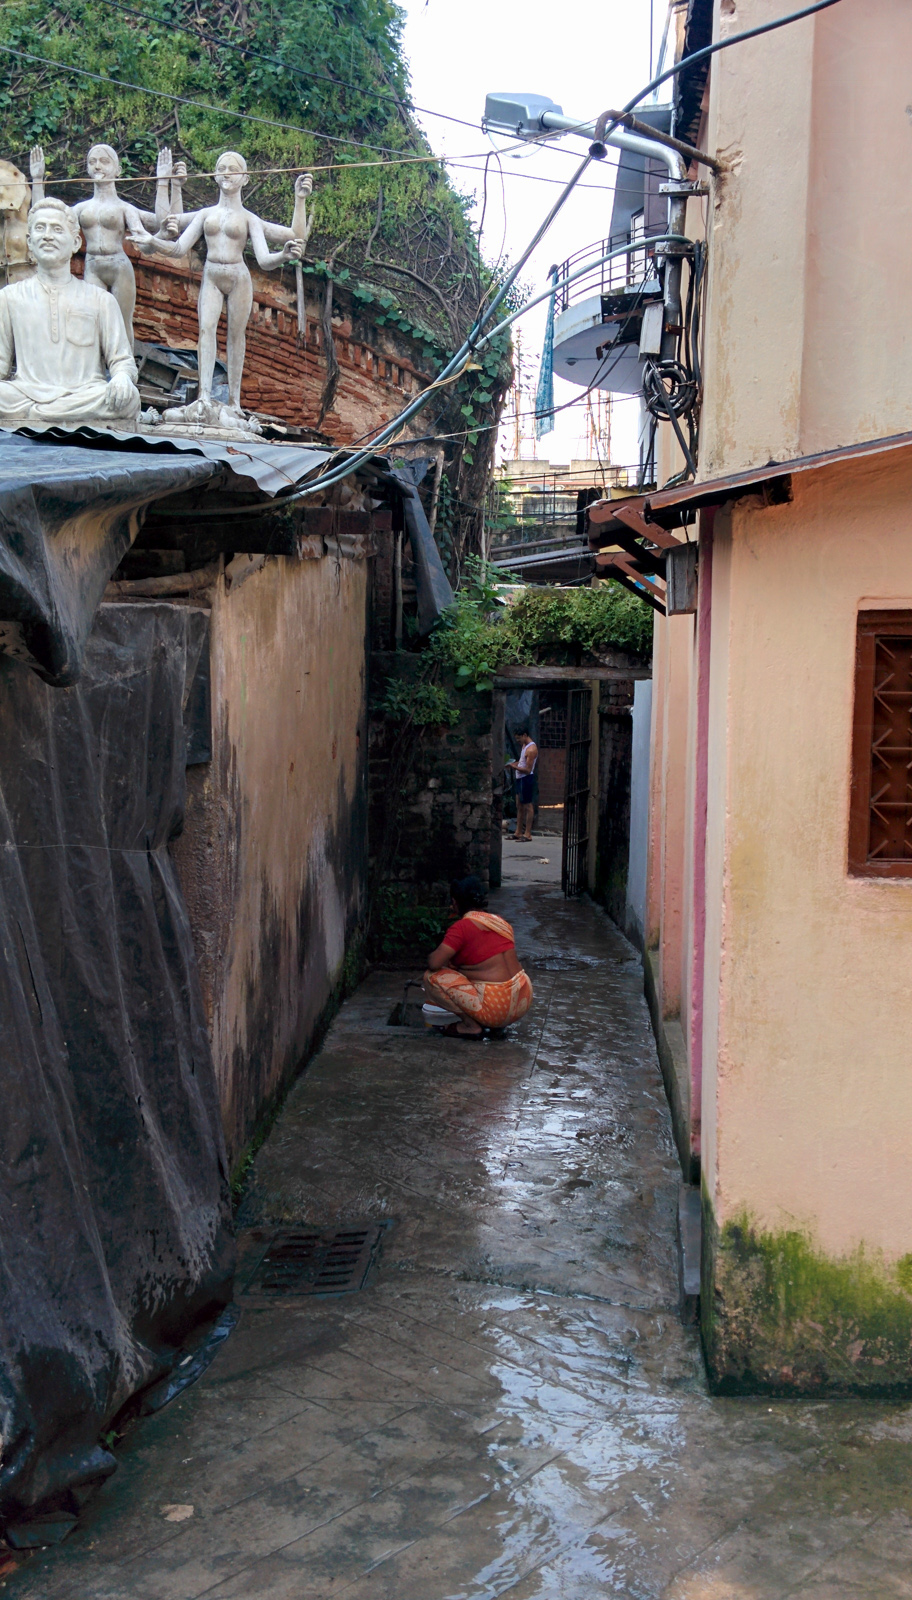 A lady washes a her clothes in the alley